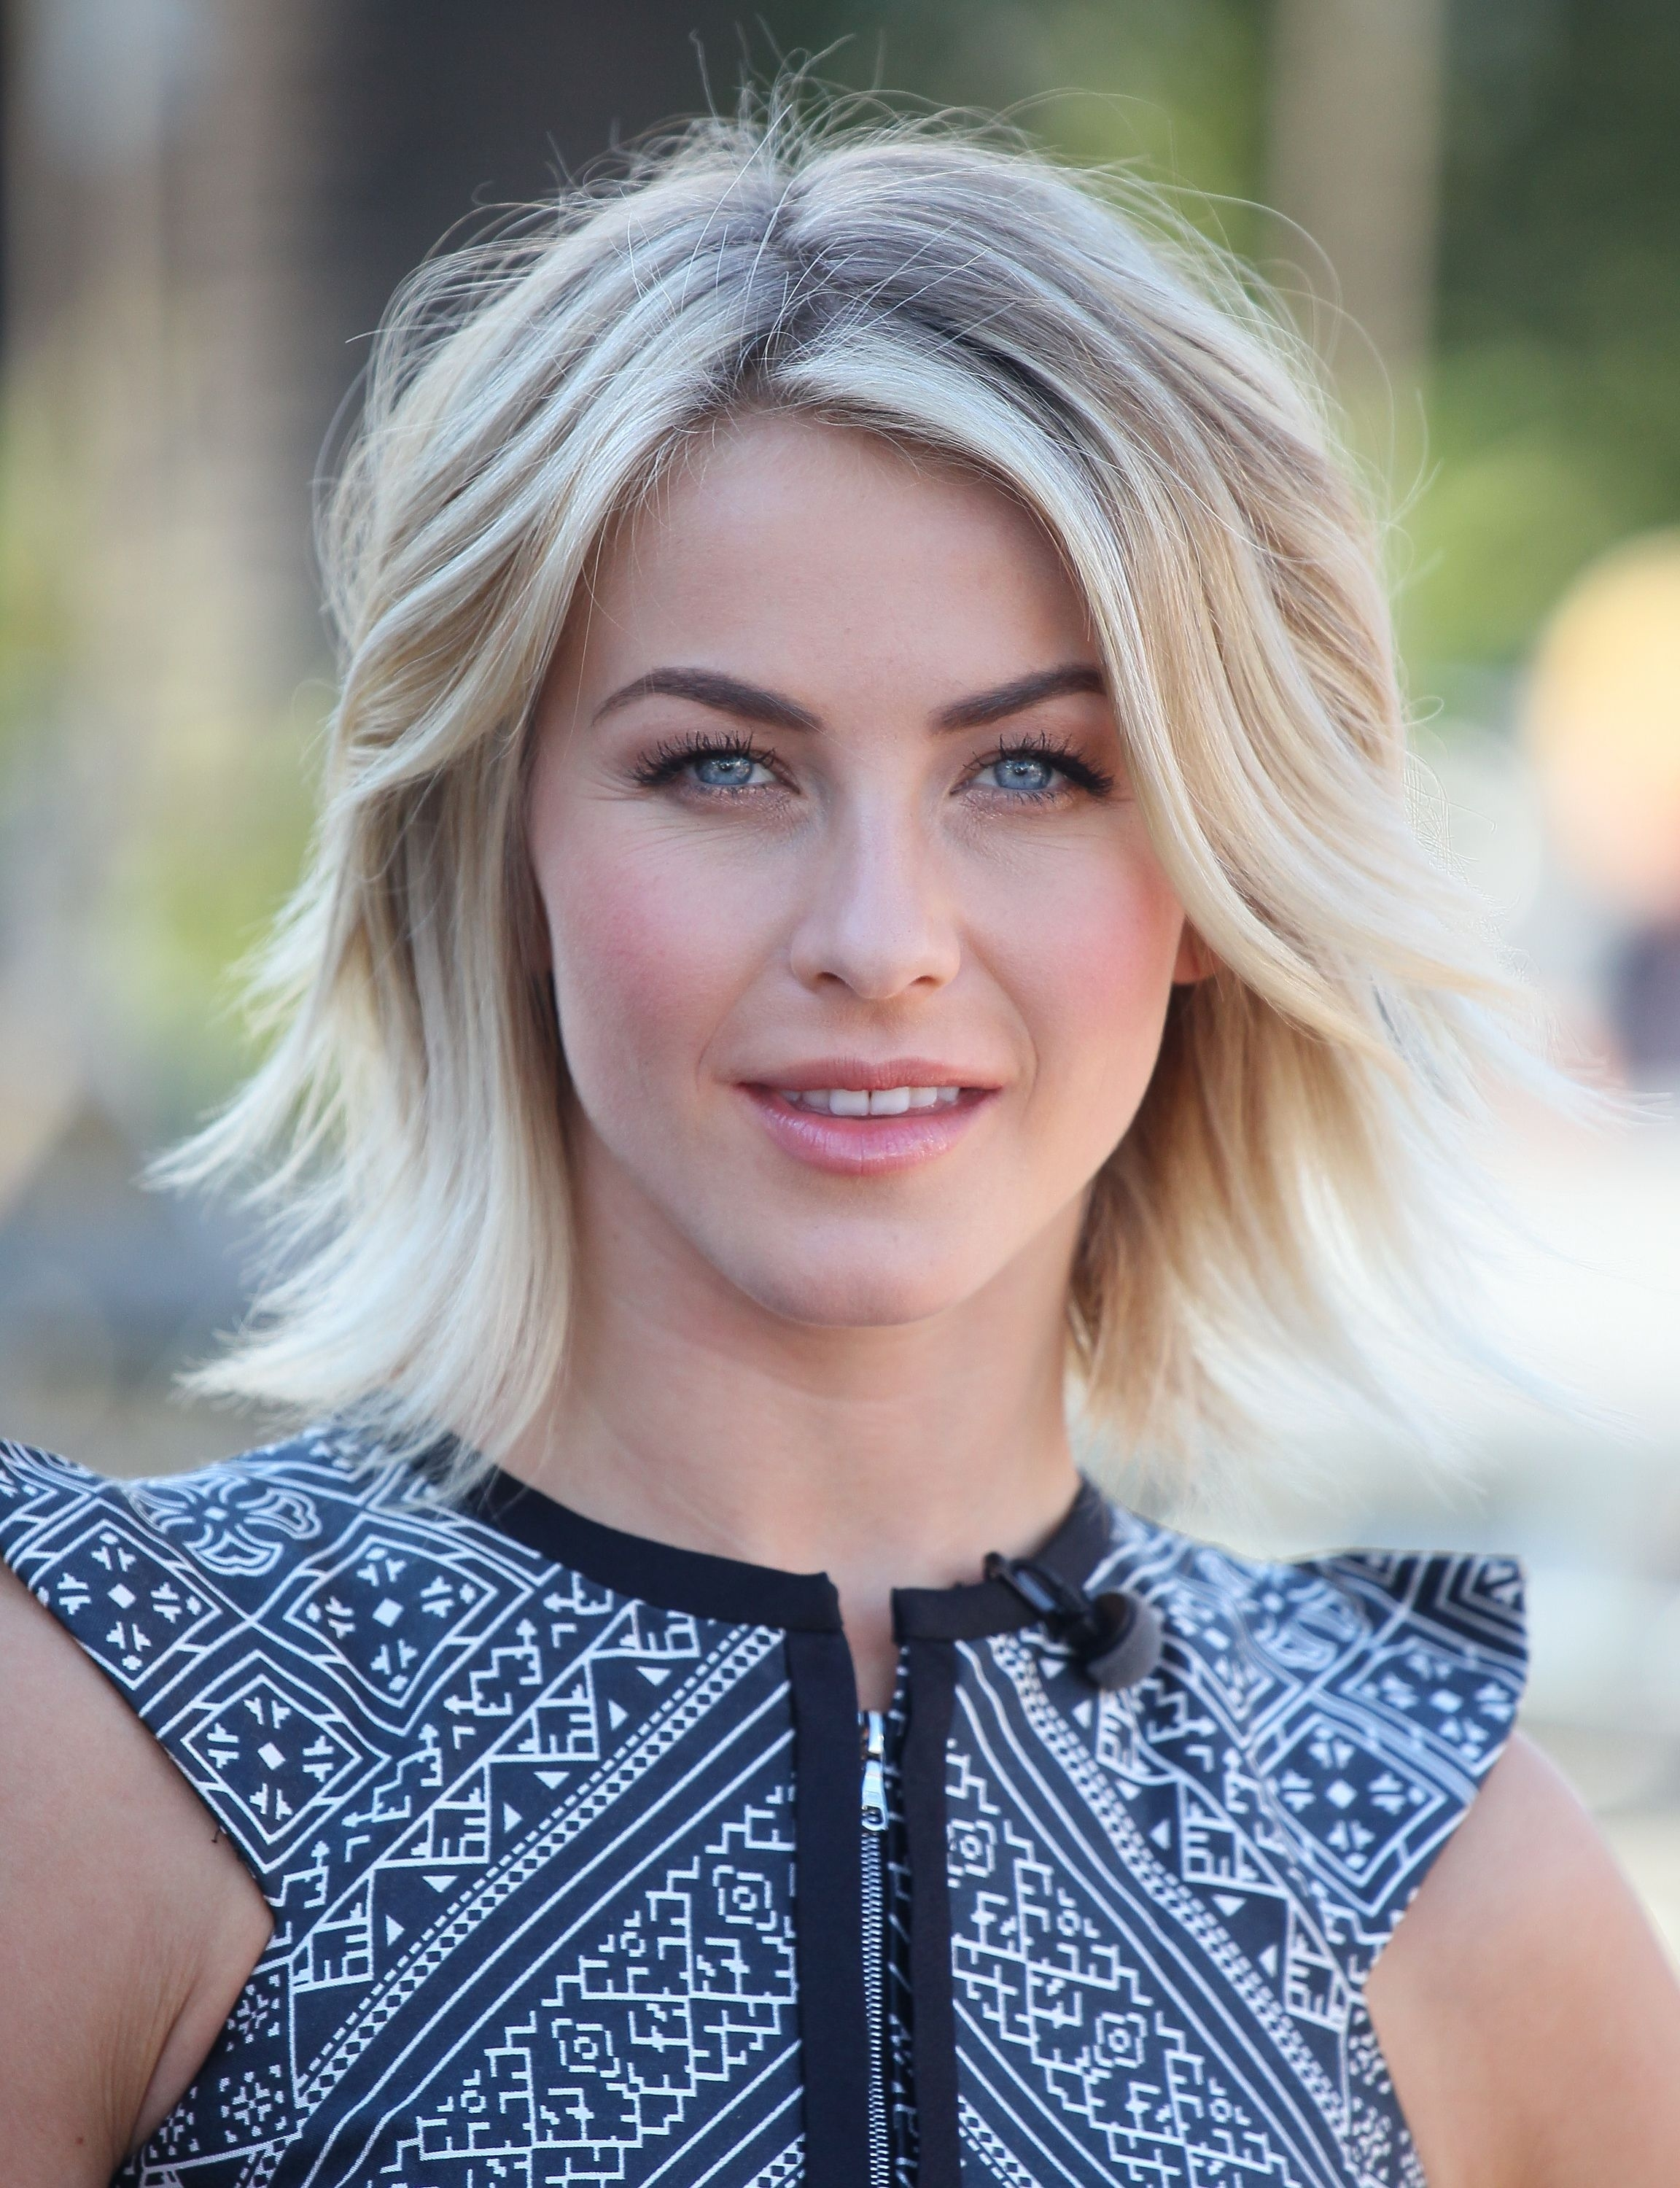 34 Best Hairstyles For Thin Hair - Haircuts For Women With Fine Or in Haircut For Thin Hair In The Front